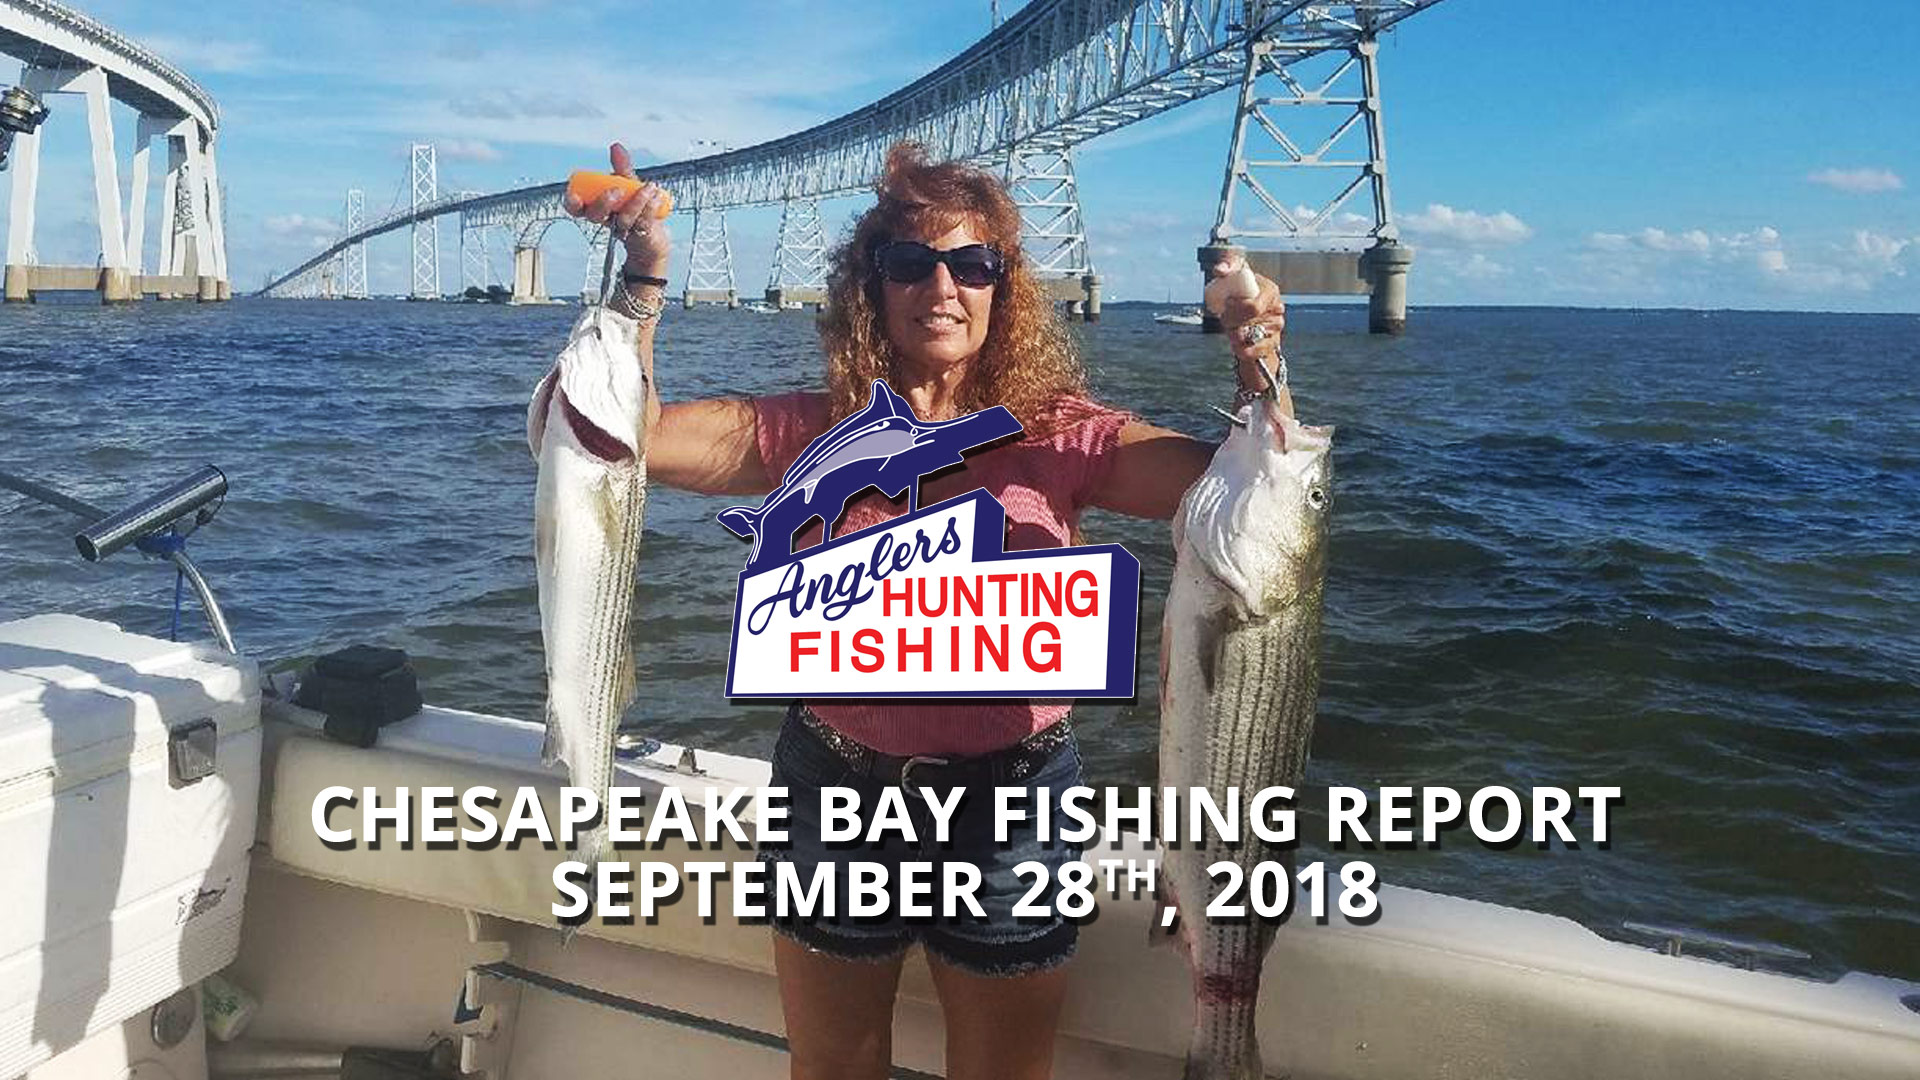 Chesapeake Bay Fishing Report - September 28th, 2018